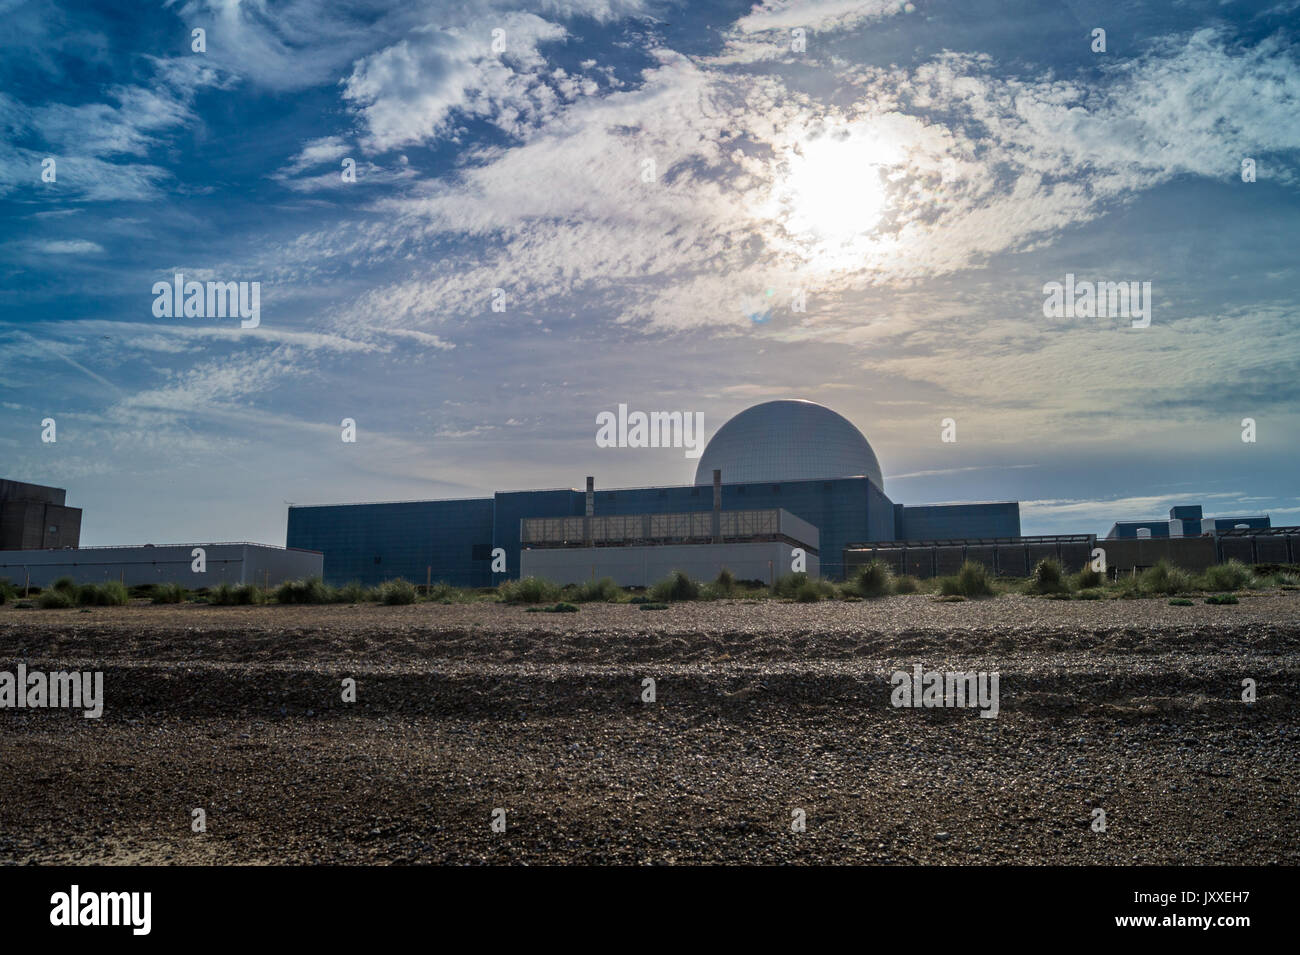 Dome of Sizewell B PWR nuclear reactor, Sizewell Beach, Suffolk, England - Stock Image